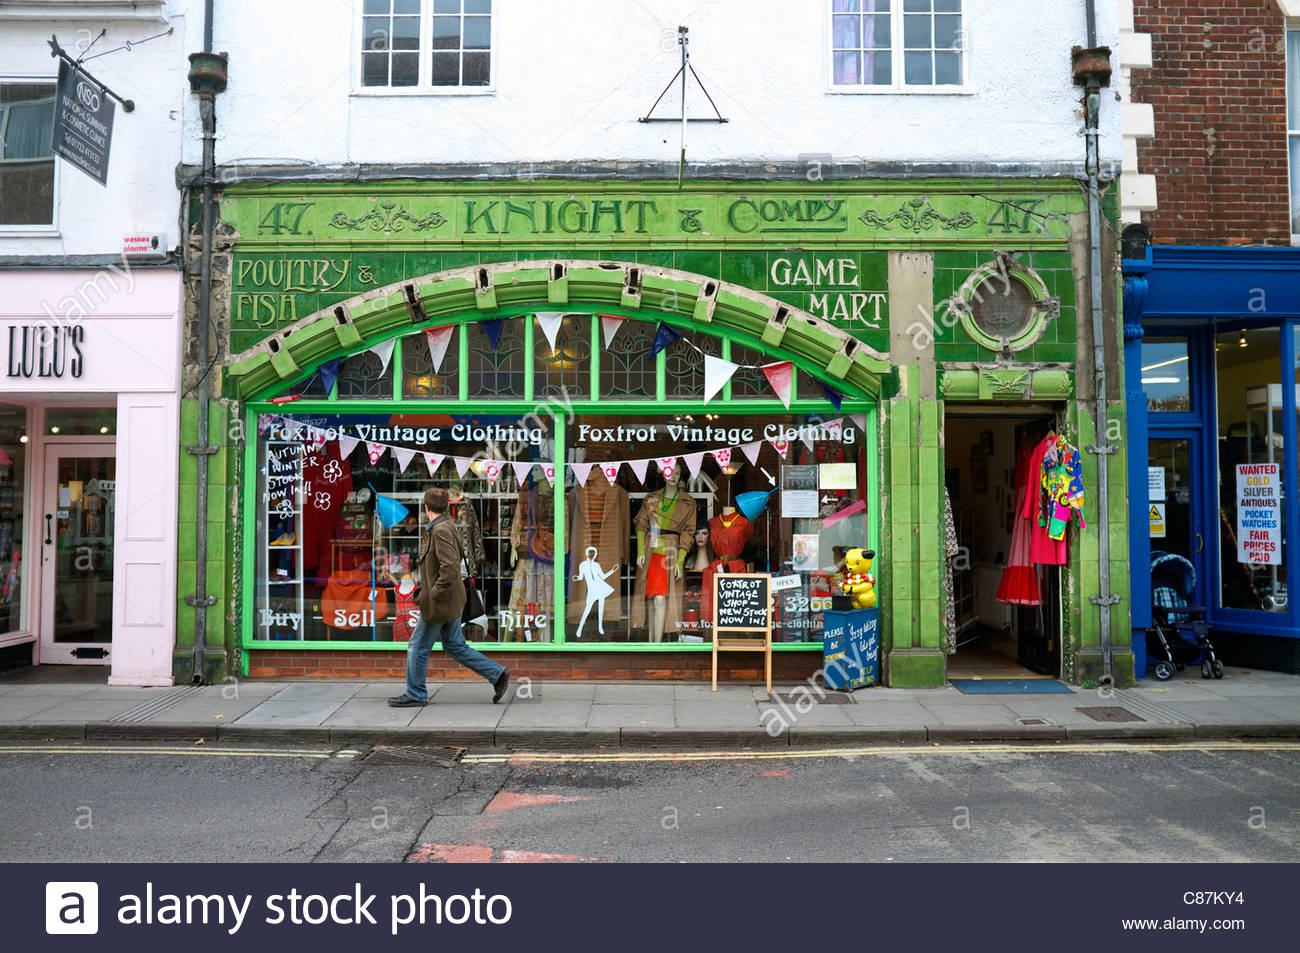 An old fresh food shop now used as a vintage clothes/decor shop, in Salisbury, Wiltshire, UK. - Stock Image